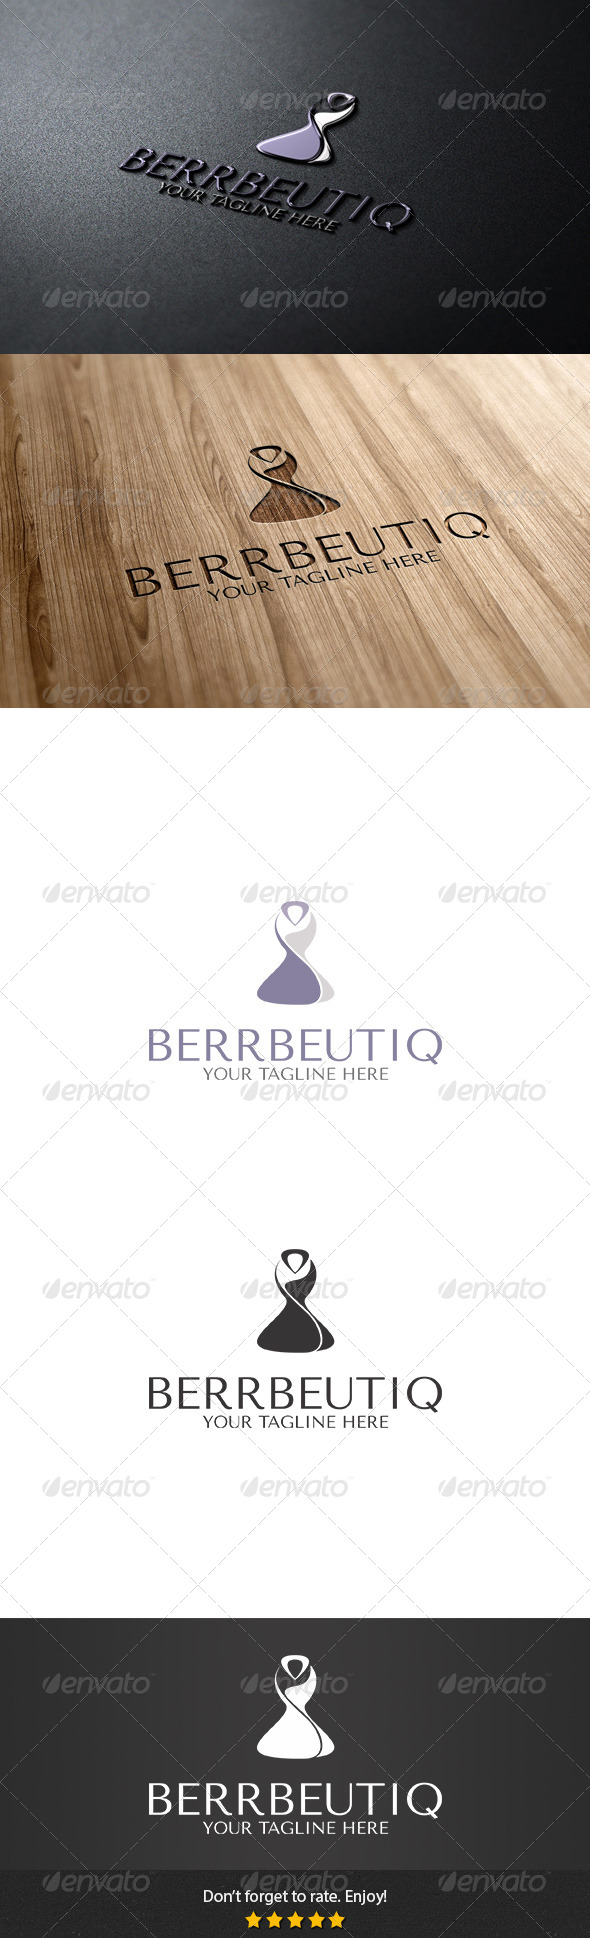 Berrbeutiq Logo - Abstract Logo Templates